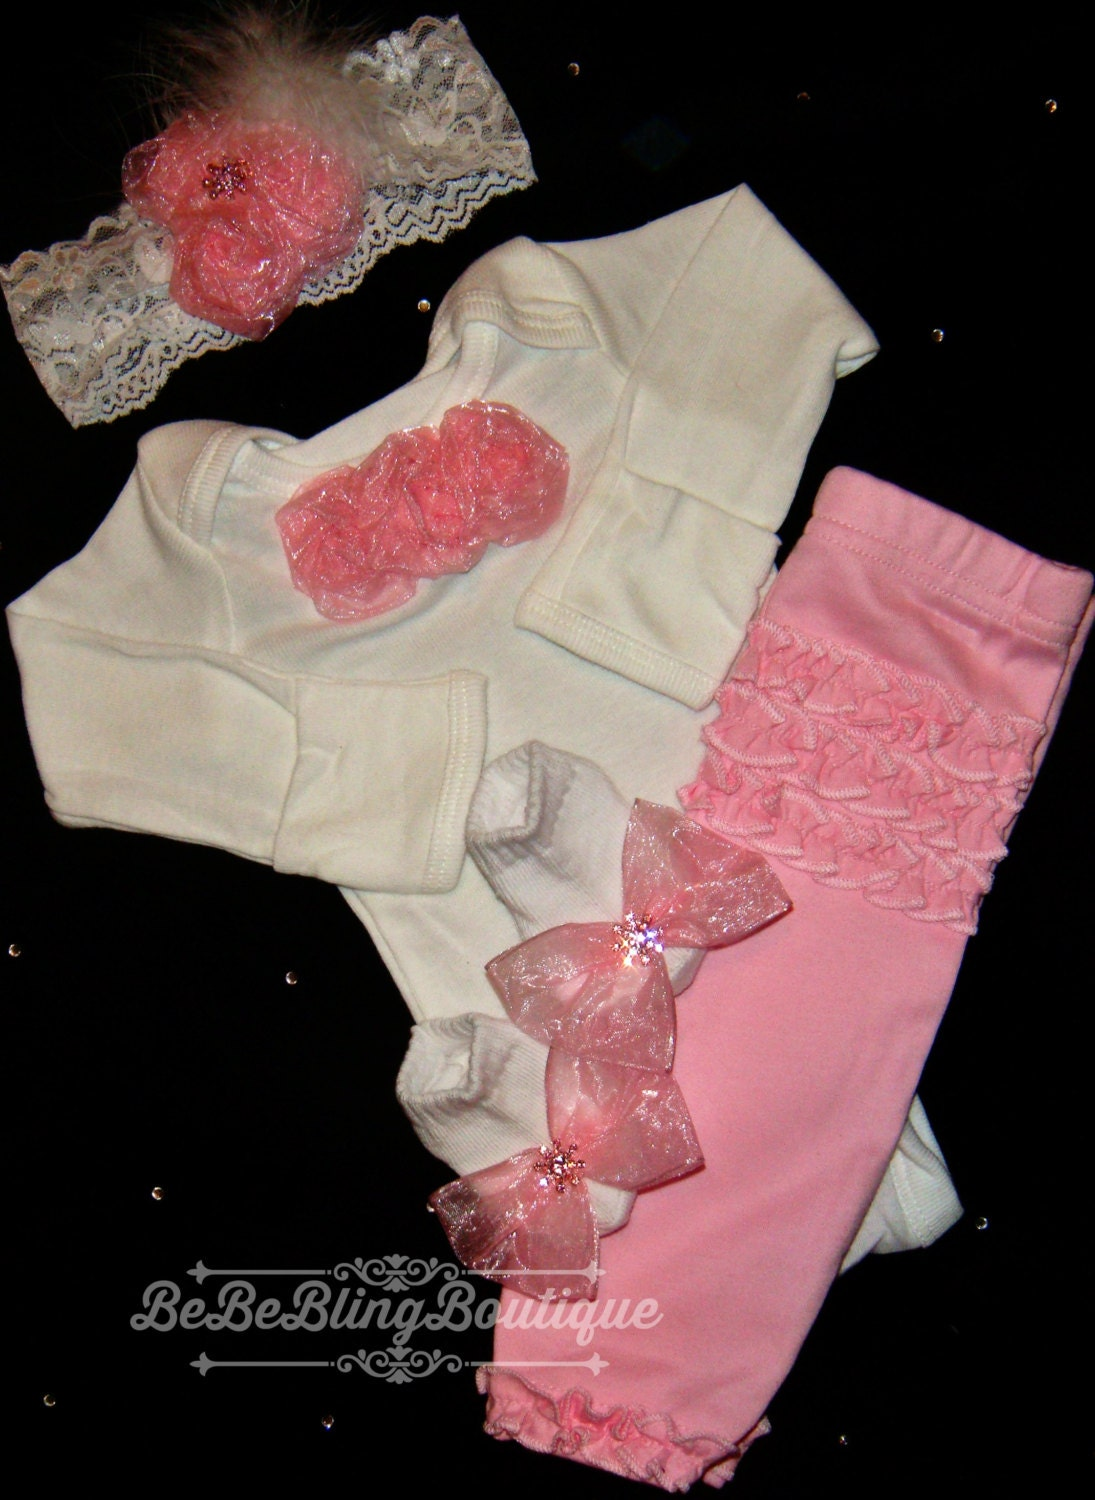 Shop our sweet, classic pima cotton take me home sets and outfits Magnolia Baby. Always free shipping over $